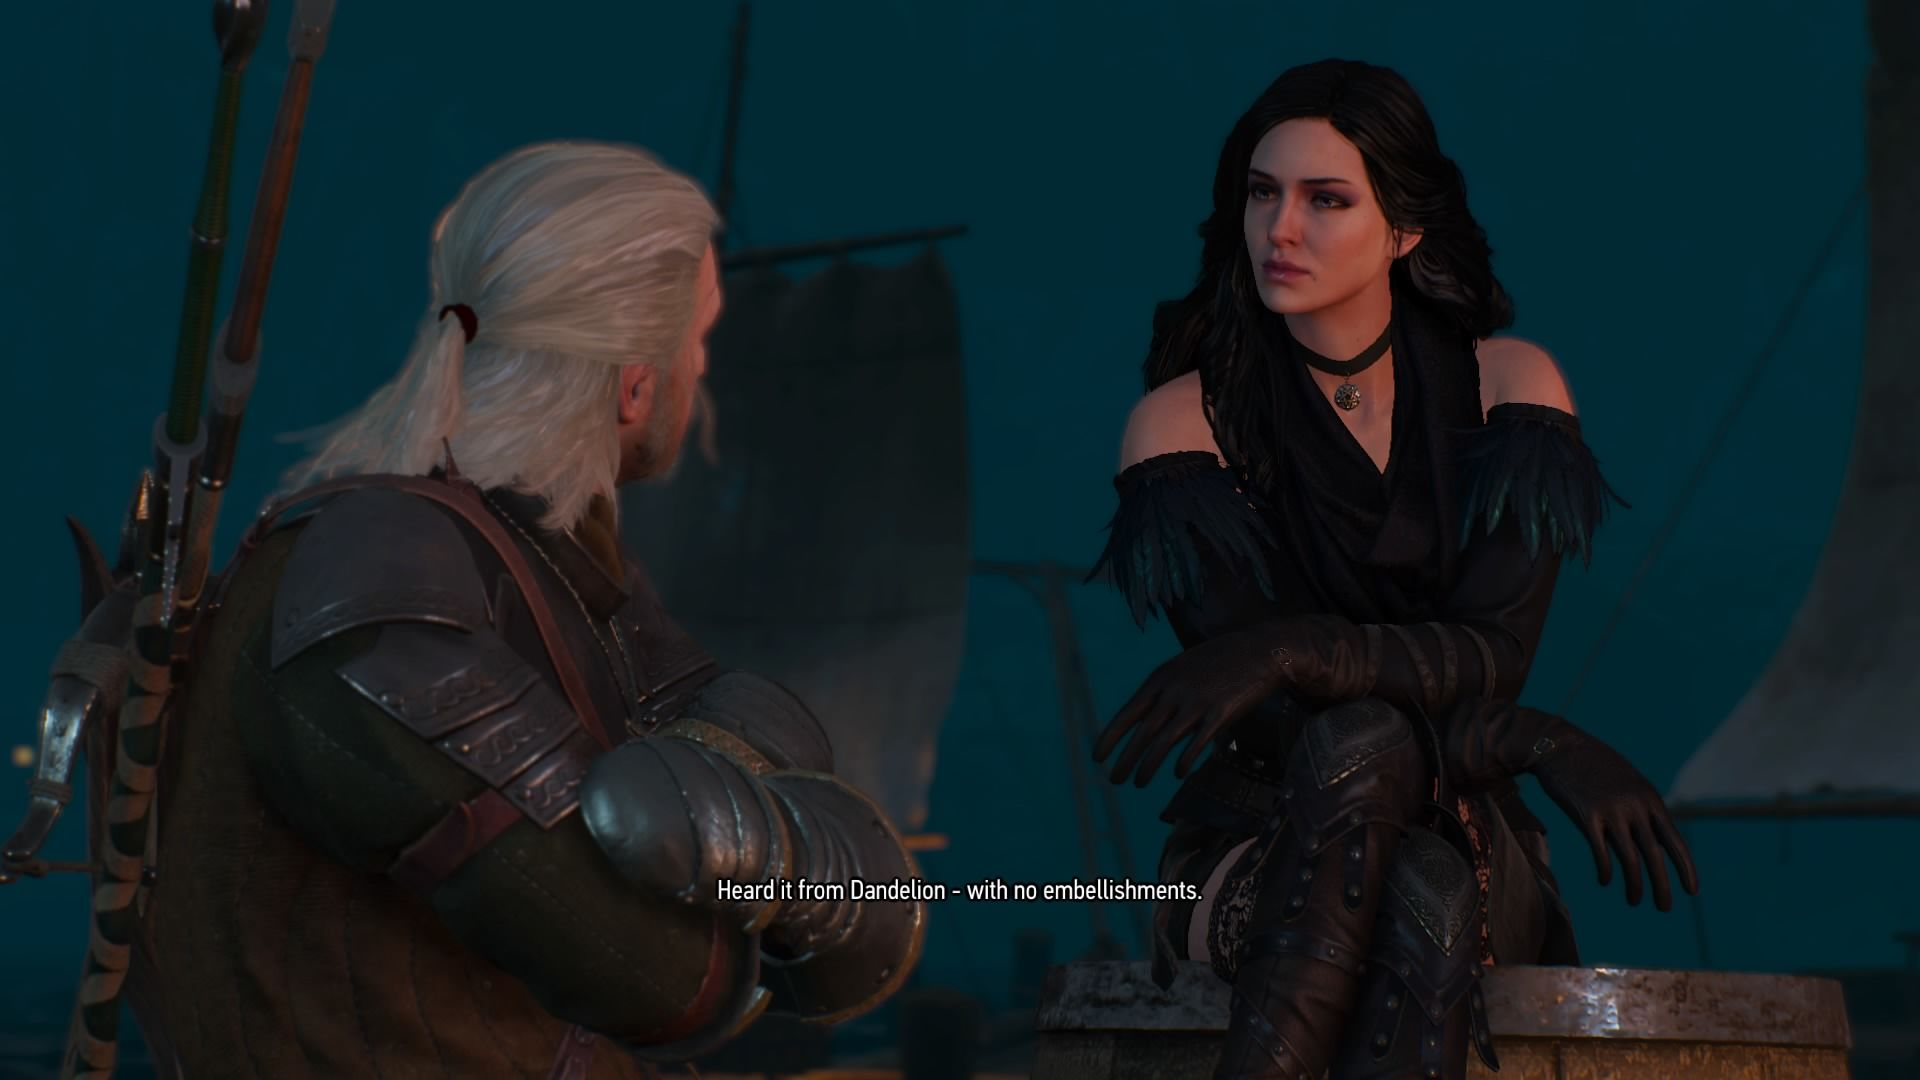 https://www.mobygames.com/images/shots/l/821381-the-witcher-3-wild-hunt-alternative-look-for-yennefer-playstation.jpg